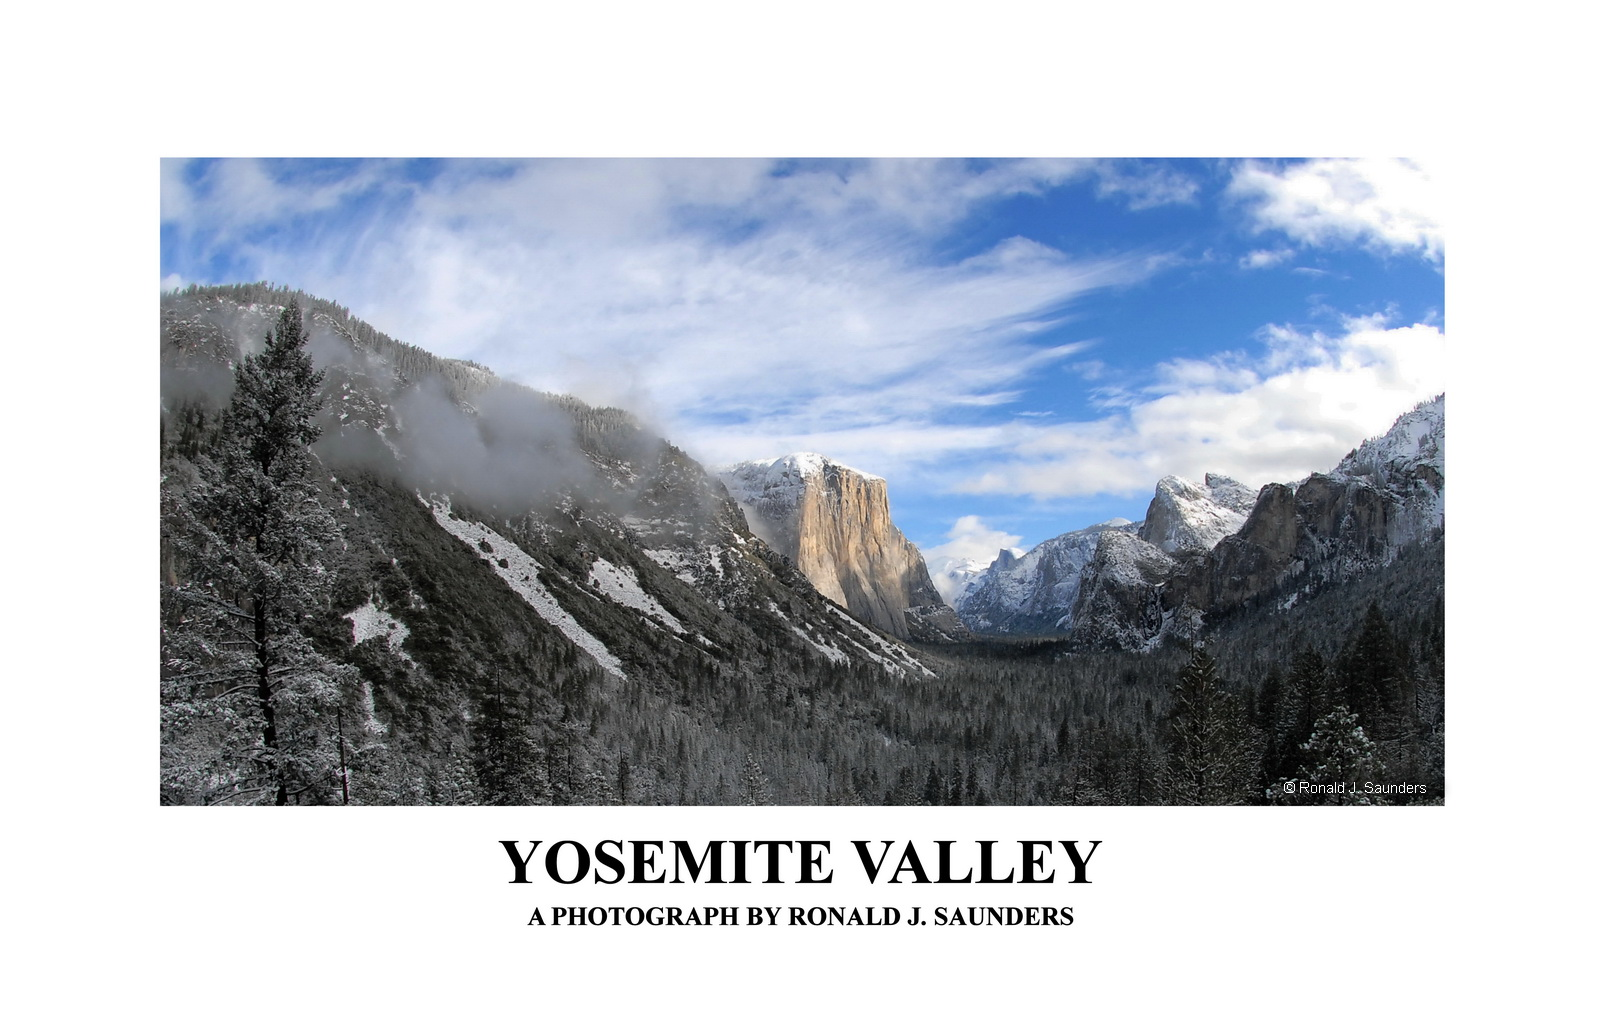 yosemite, half dome, el capita, poster, landscape, photo